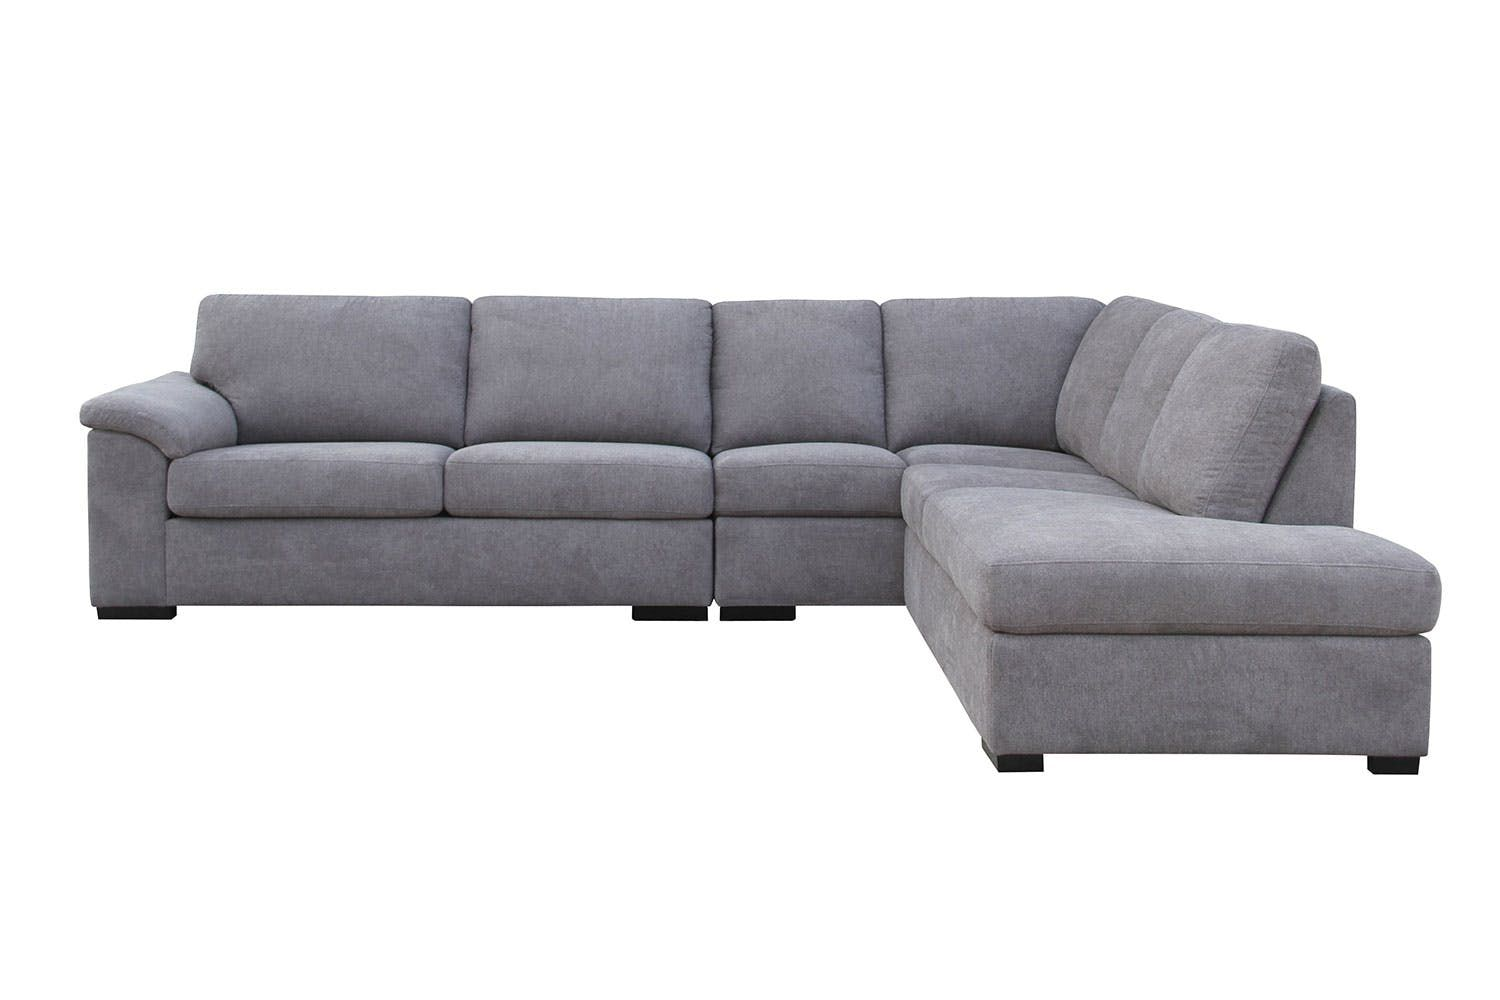 Nebula 5 Seater Fabric Corner Lounge Suite With Sofa Bed Harvey Norman New Zealand Lounge Suites Sofa Bed Lounge